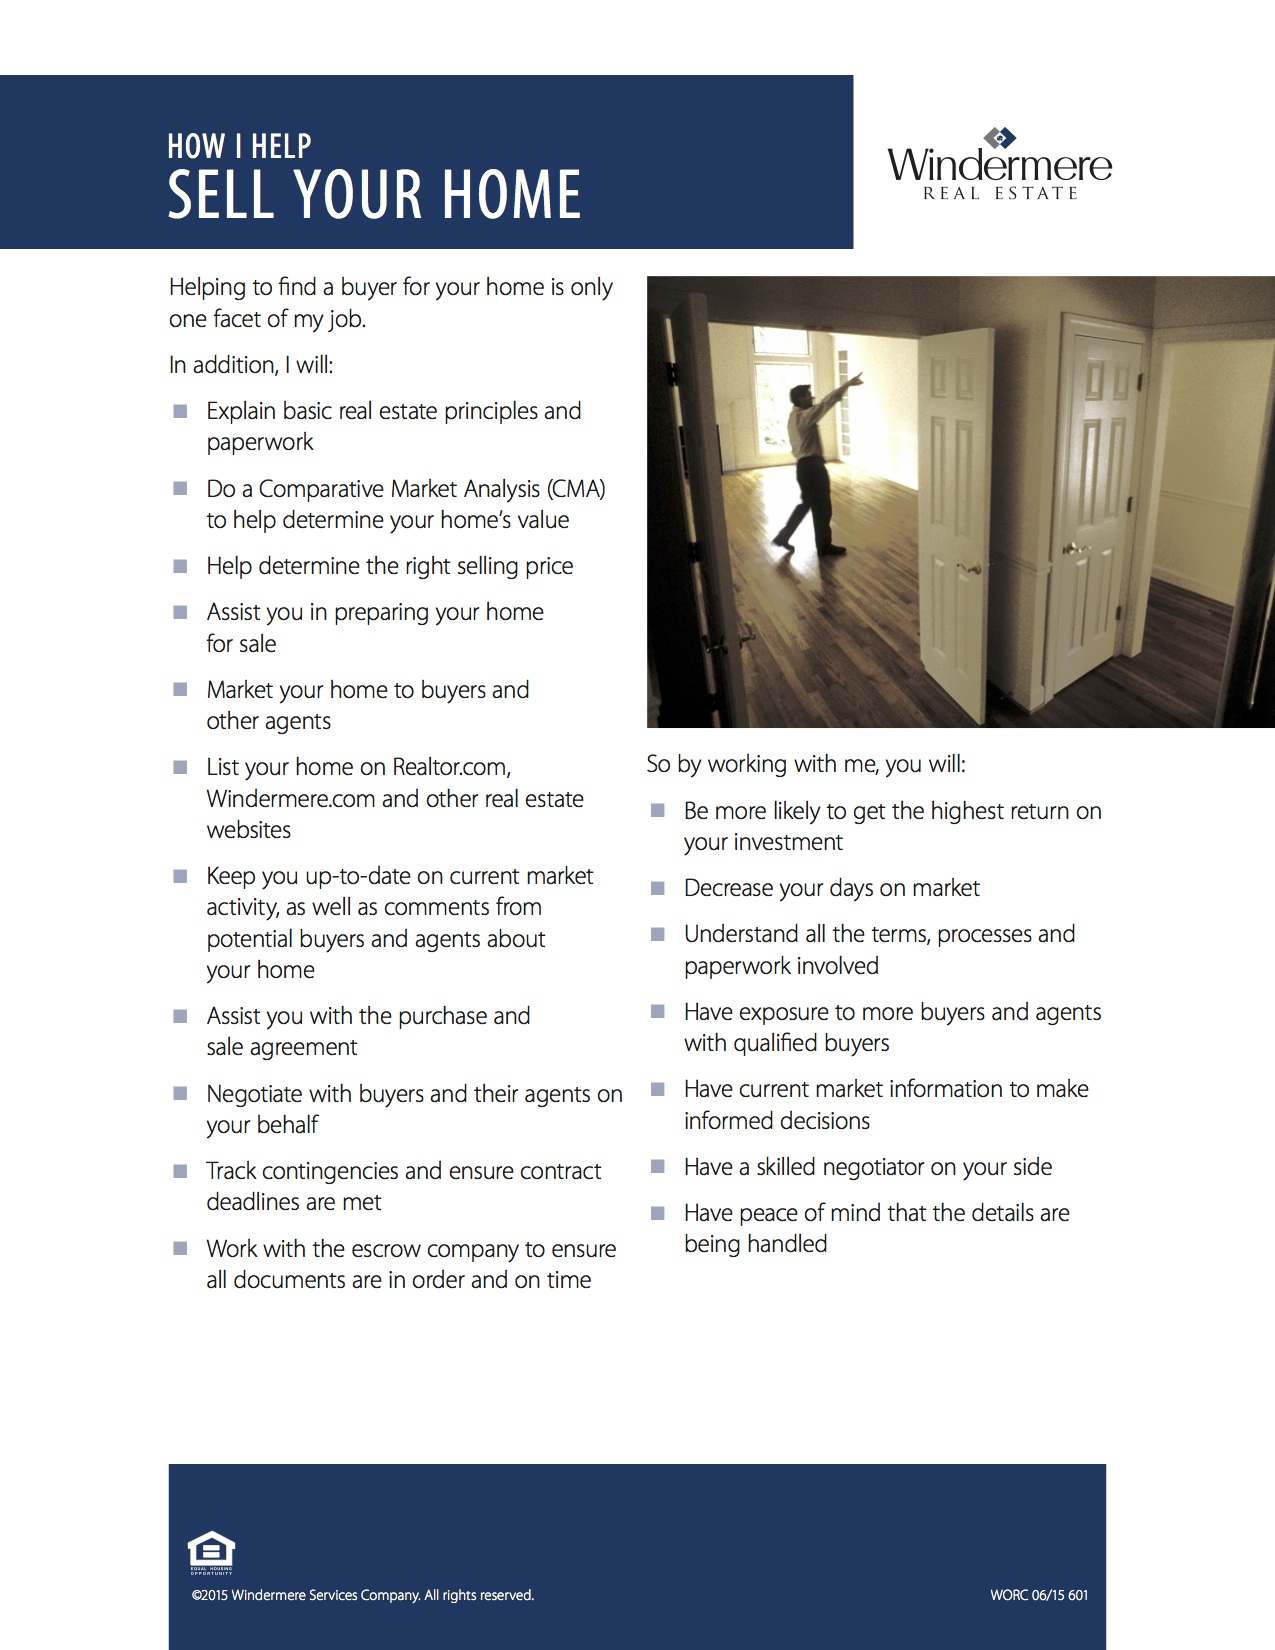 601 How I Help Sell Your Home WORC-2